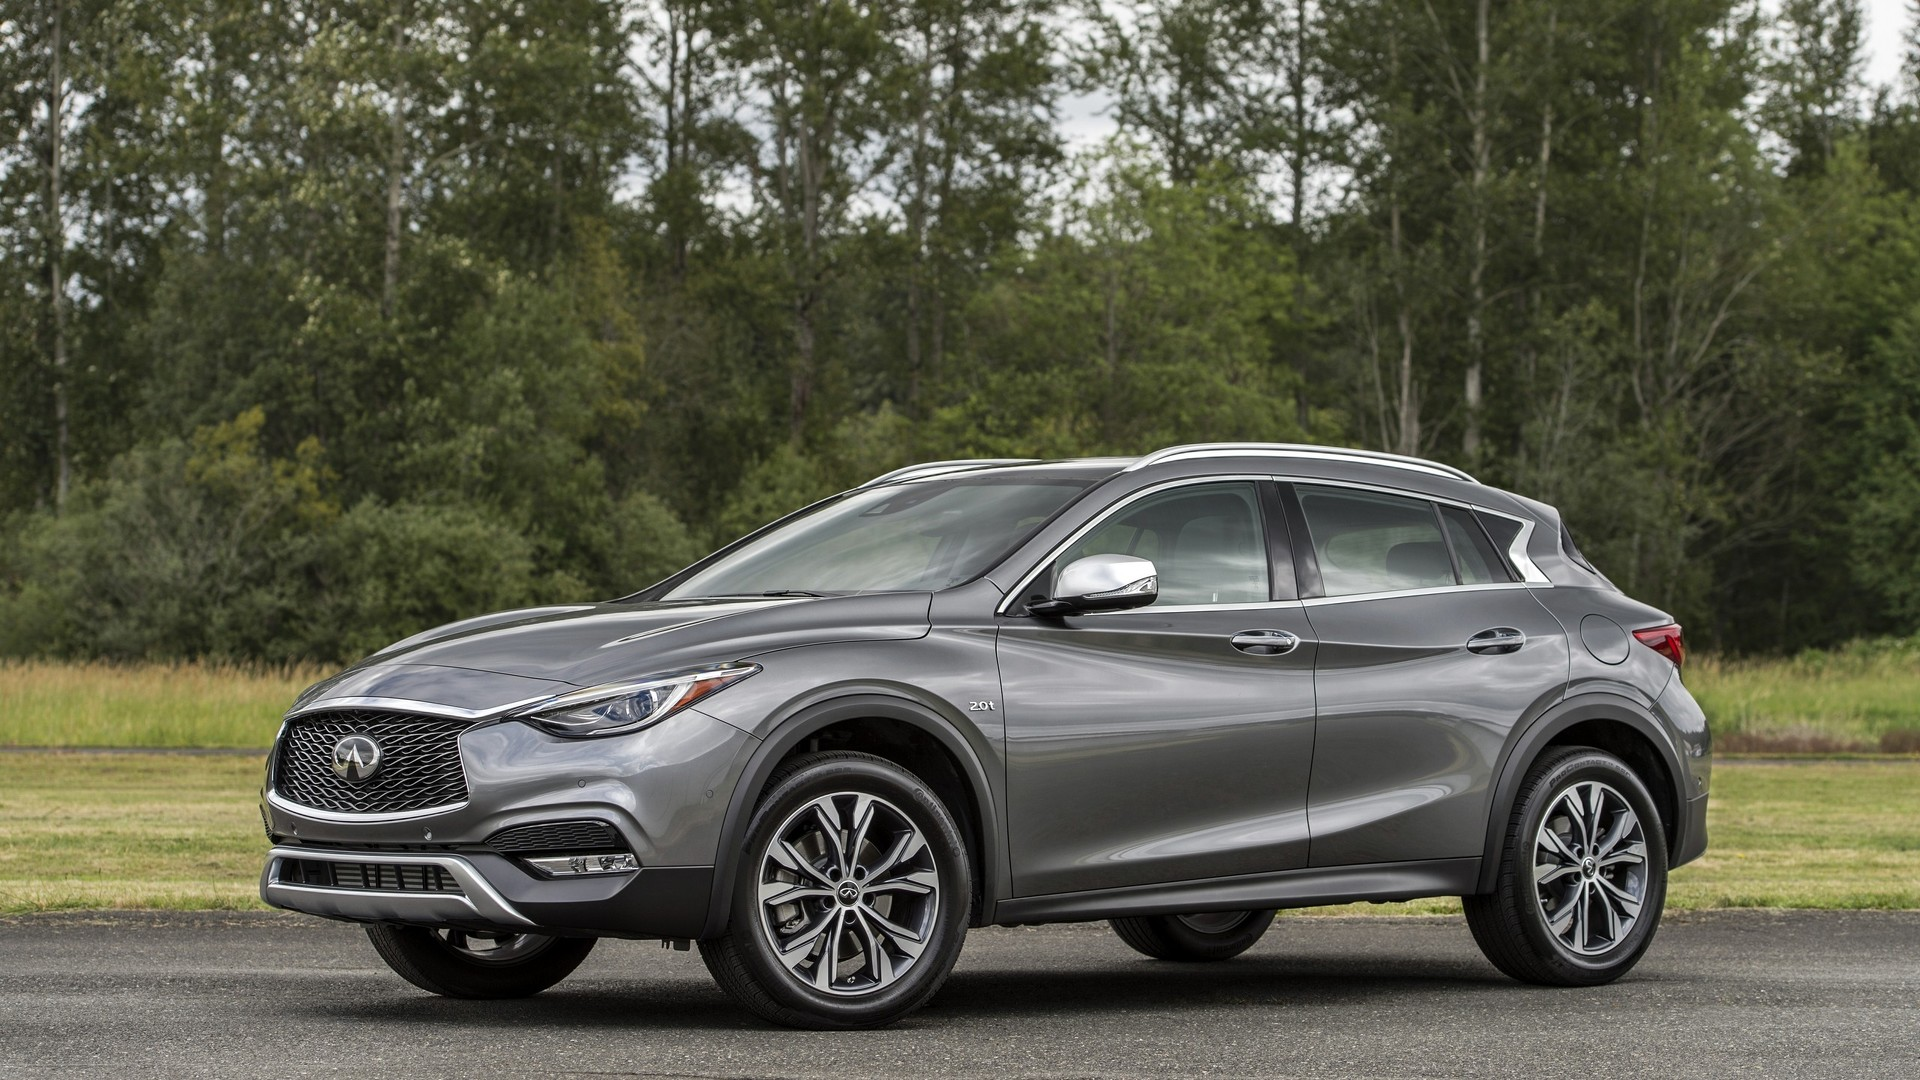 prices crossover infiniti new and date release news specs infinity carbuyer